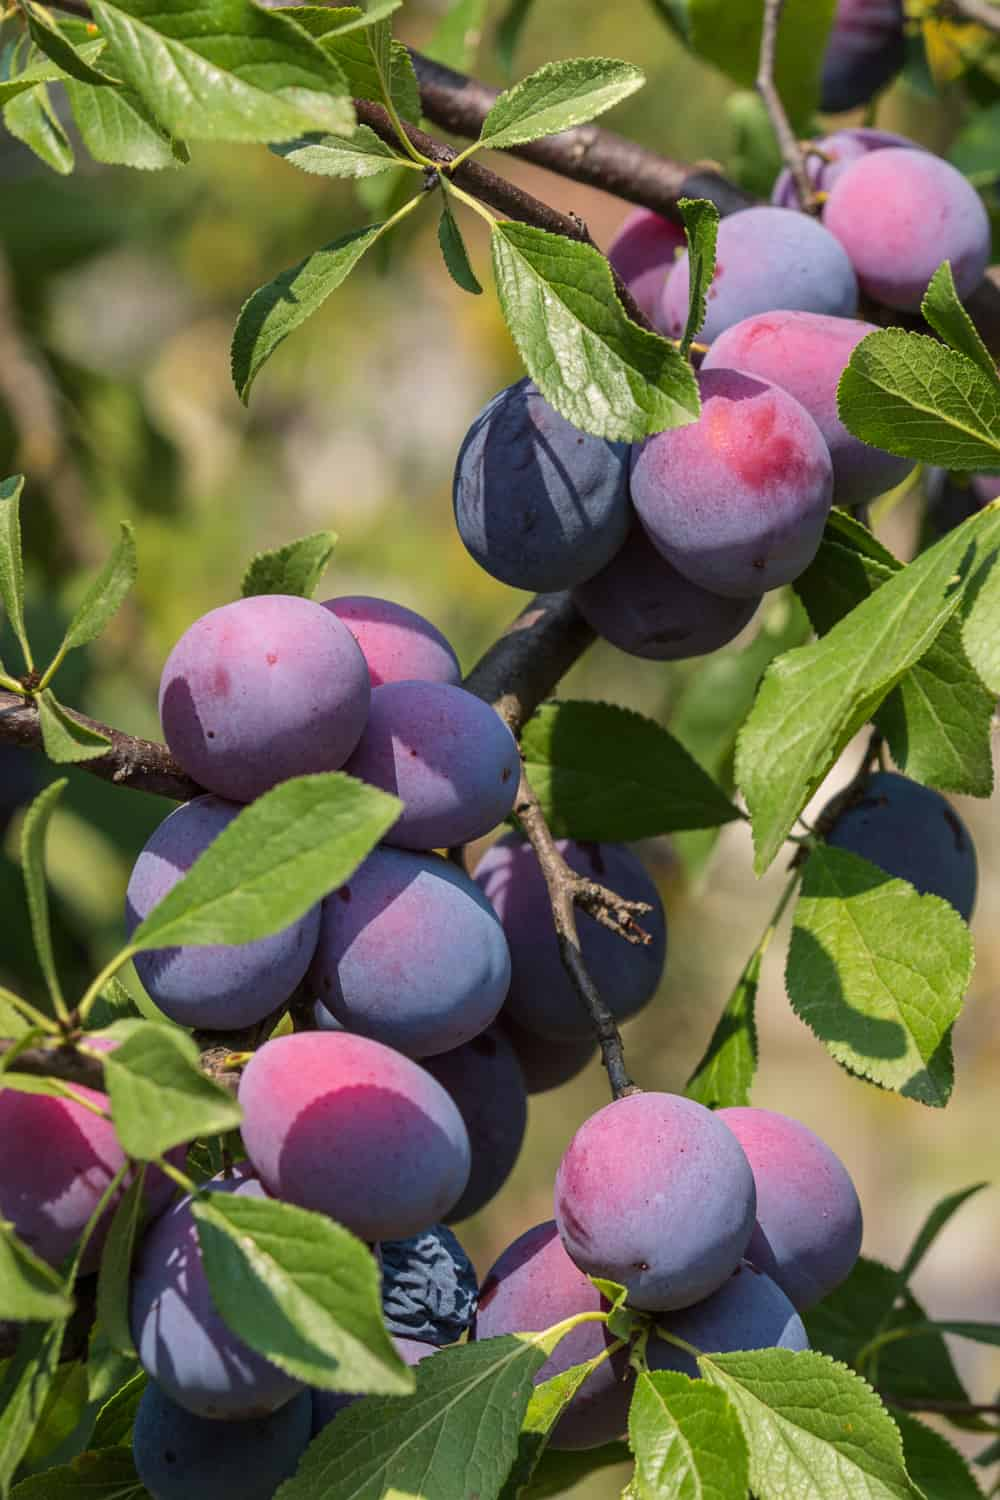 The Risk of Consuming Plums That Have Gone Bad